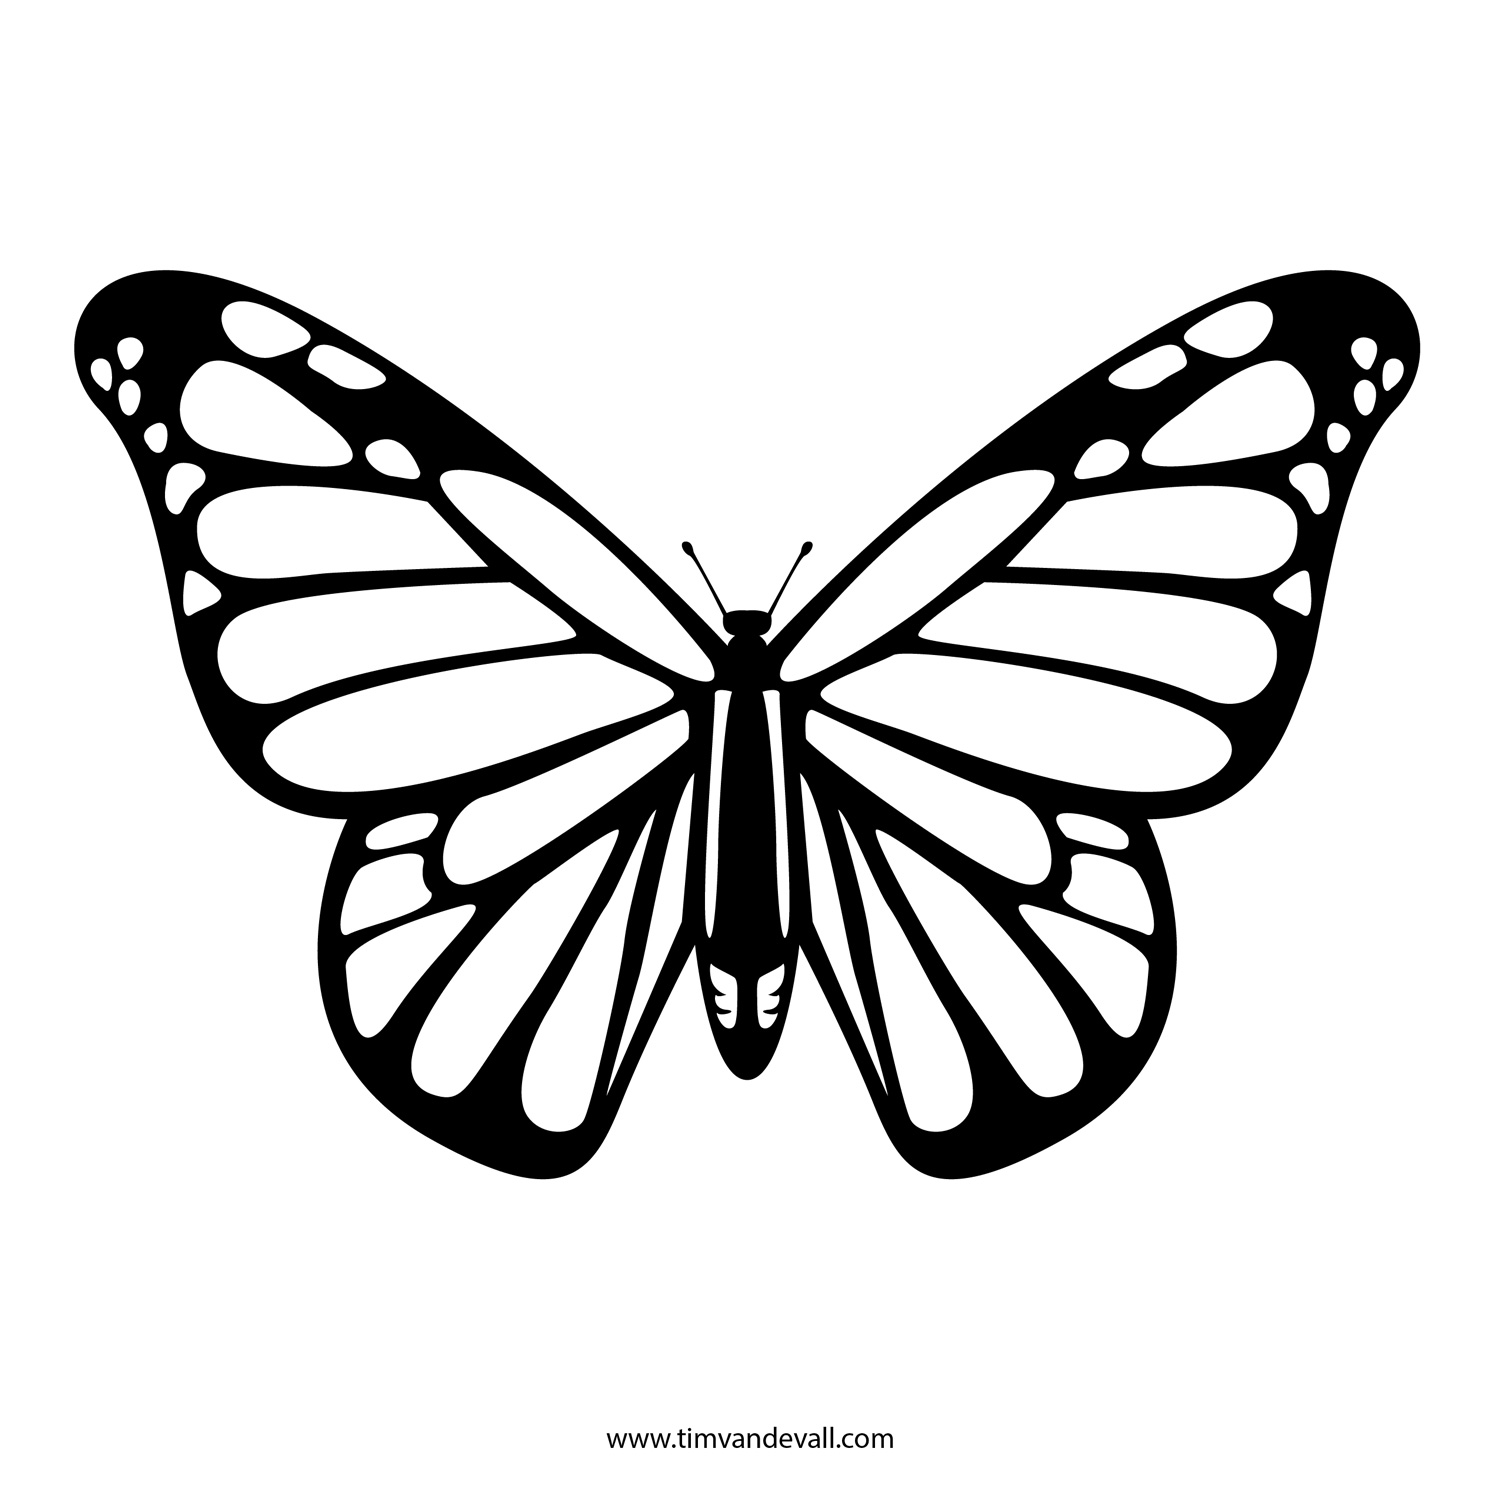 8 Images of Butterfly Stencils Printable